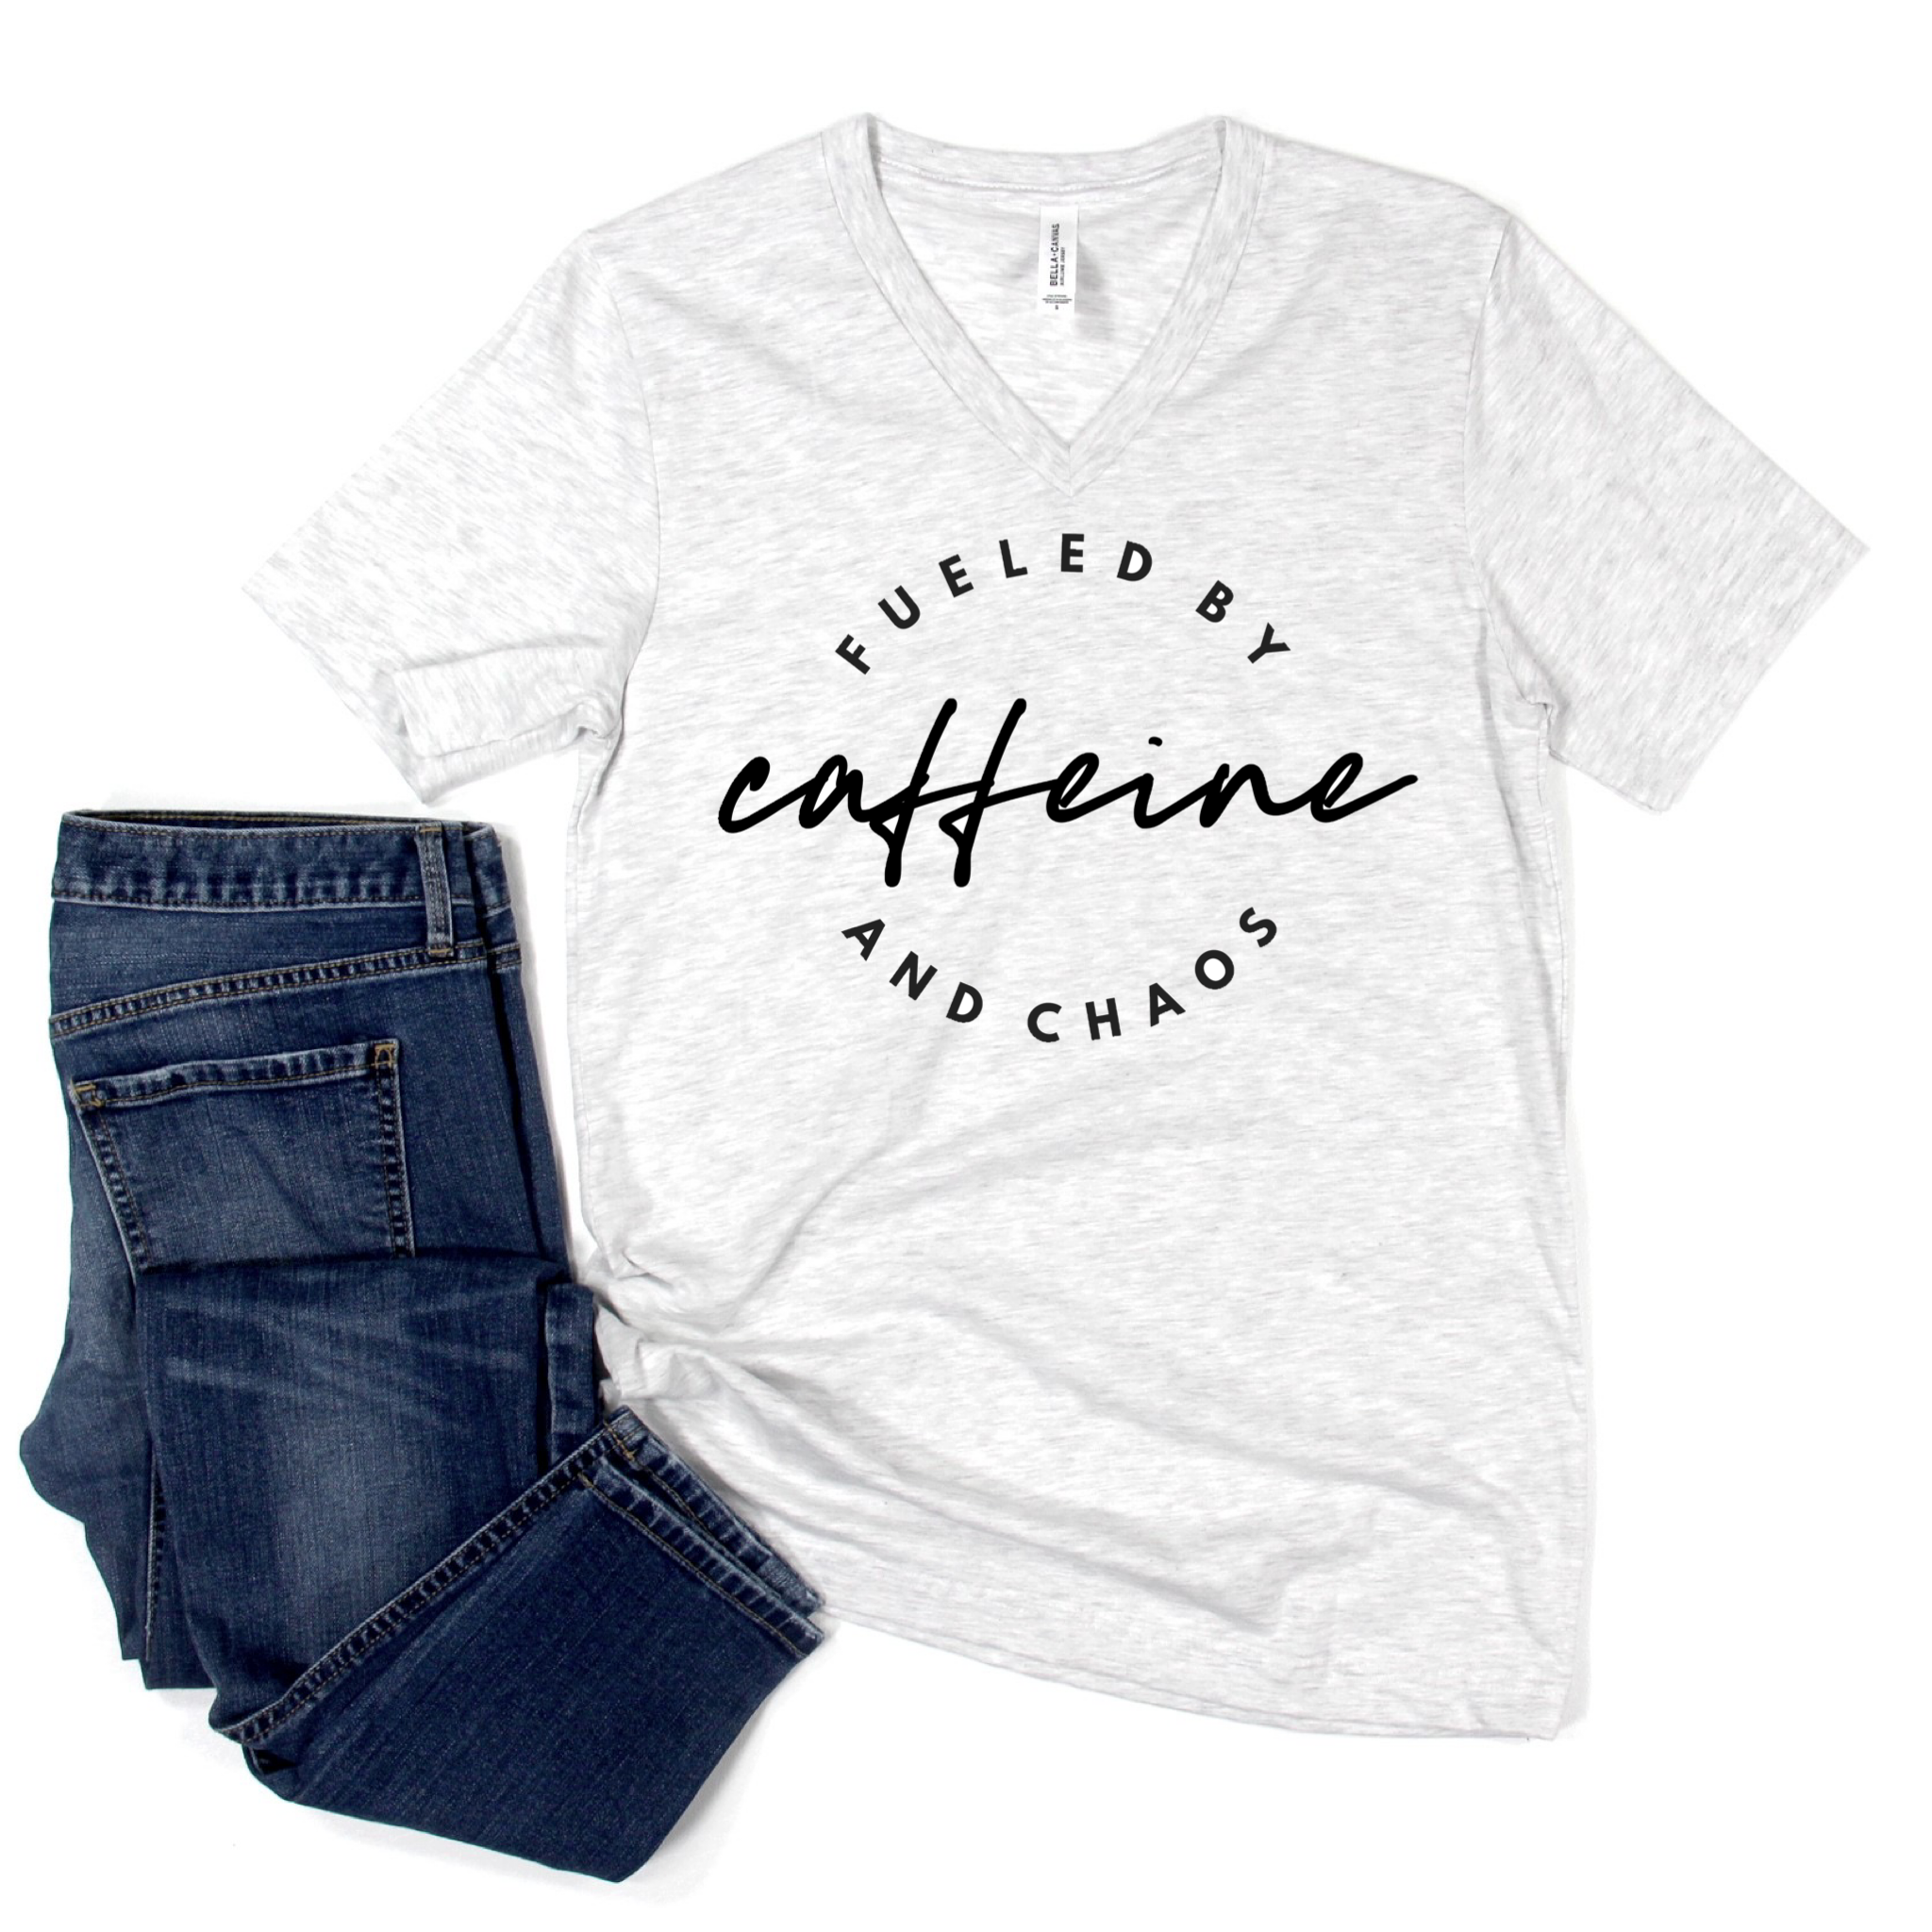 Fueled by Caffeine & Chaos White Fleck V-neck Tee [ships in 3-5 business days]